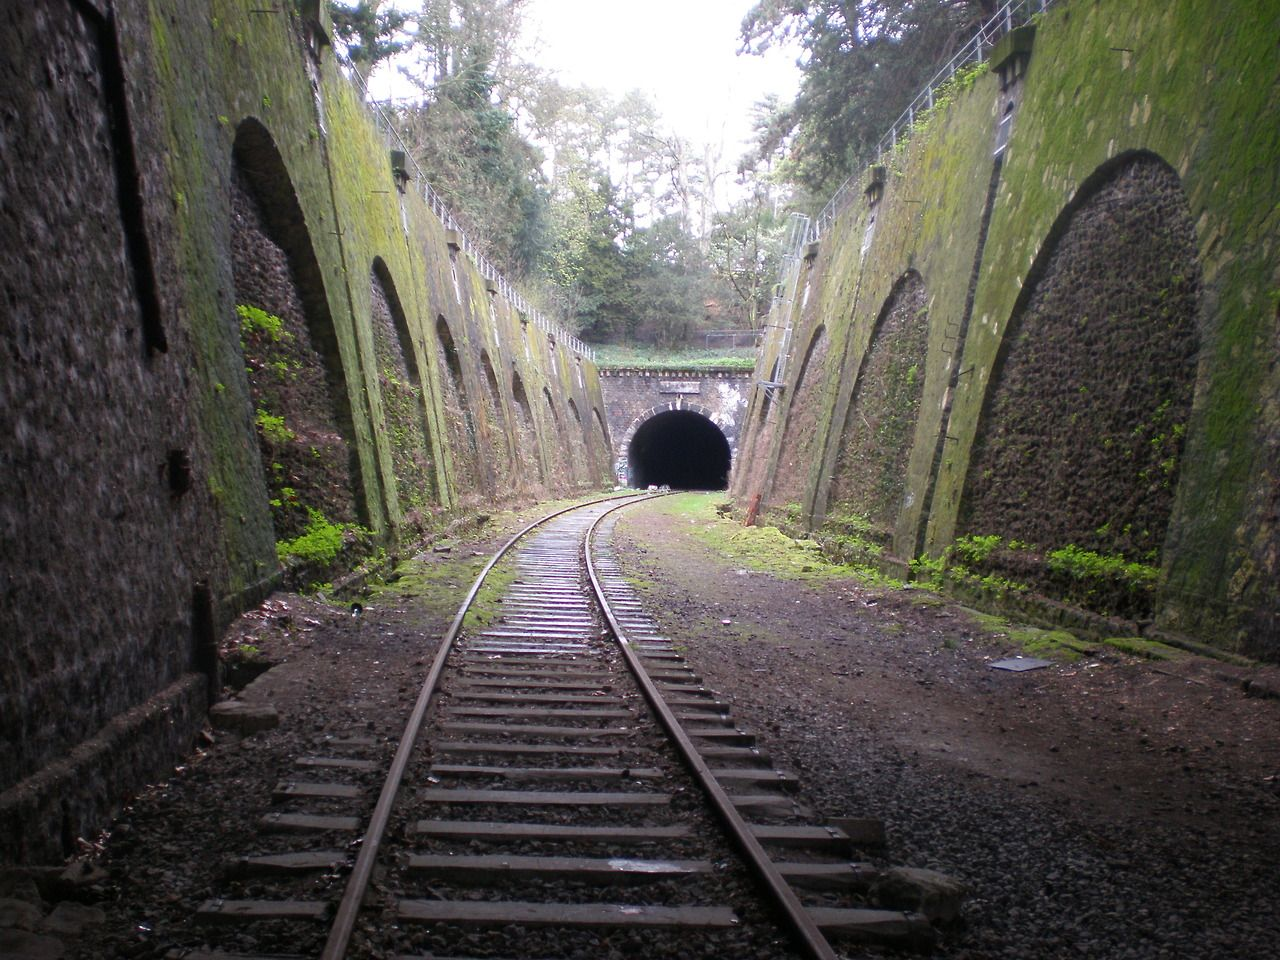 The Petite Ceinture is an abandoned, circular railroad track